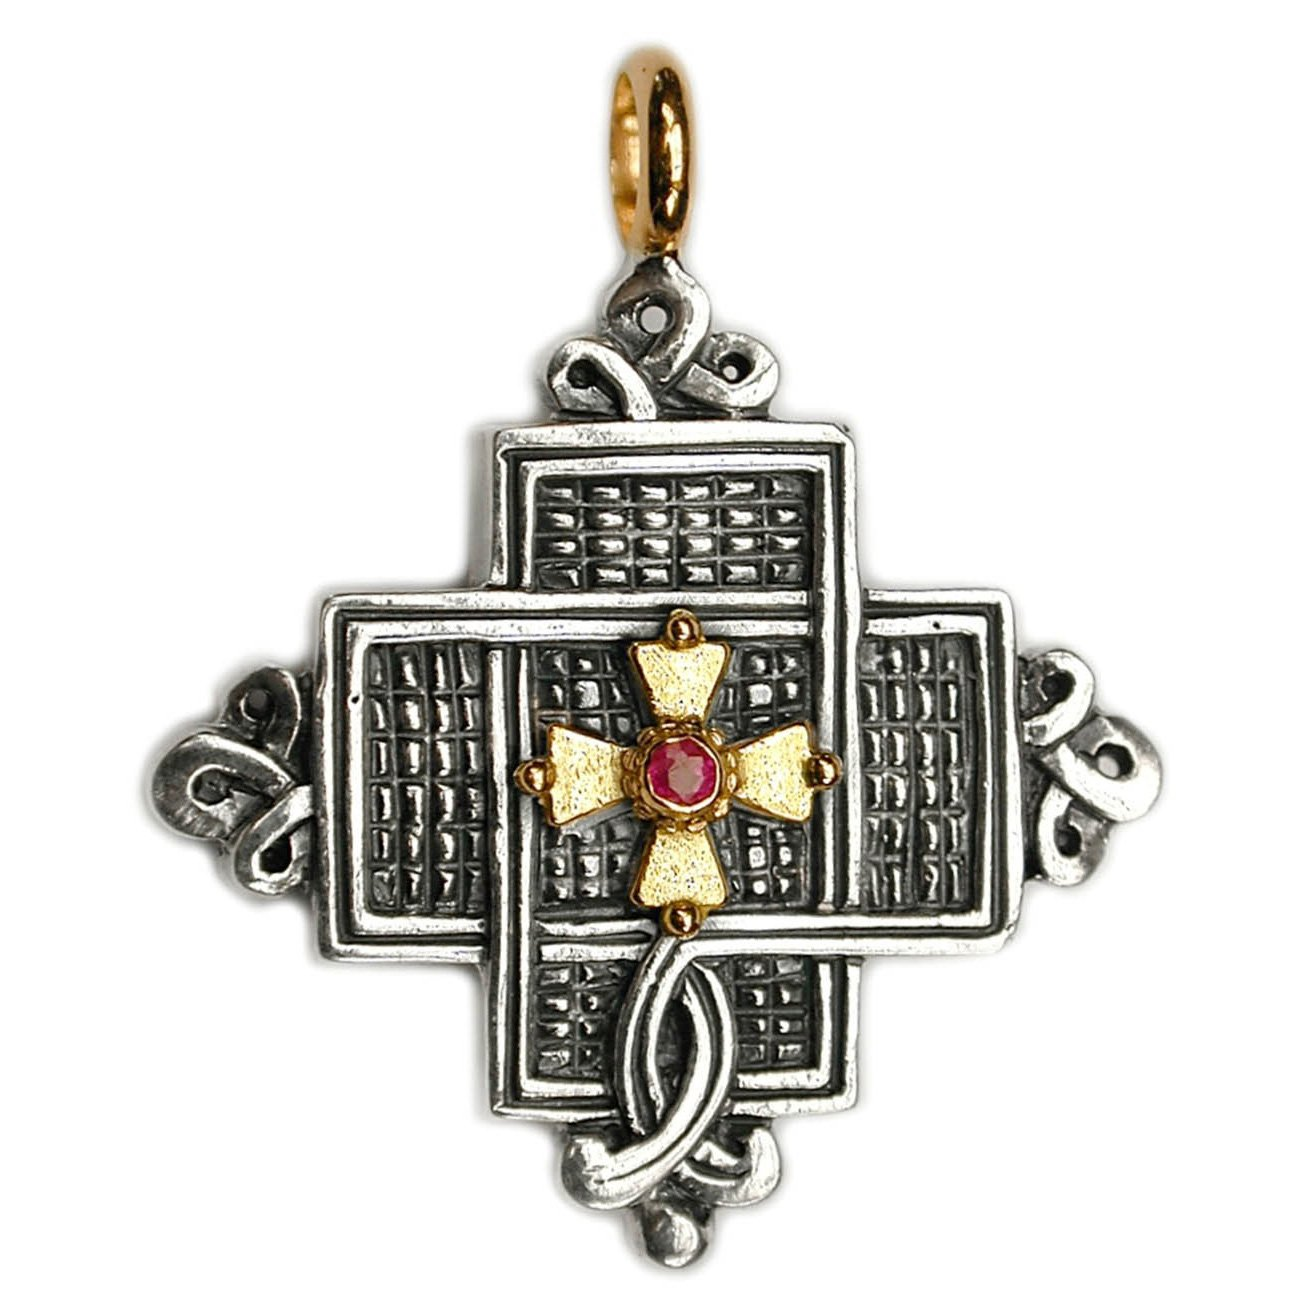 Gerochristo 5054 - Solid 18K Gold, Sterling Silver & Ruby Coptic Cross Pendant